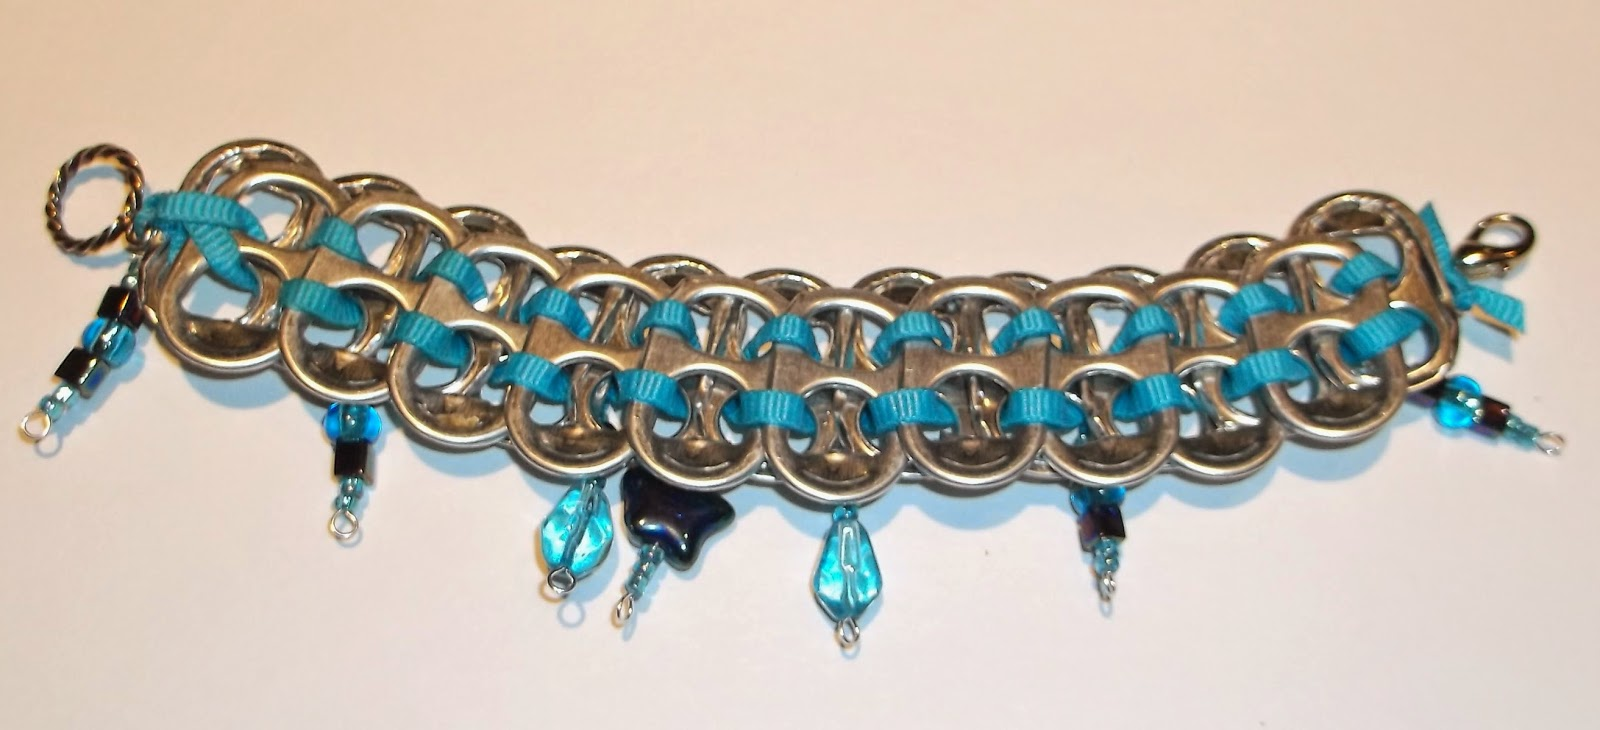 https://www.etsy.com/listing/191651101/upcycled-pop-top-bracelet-with-blue